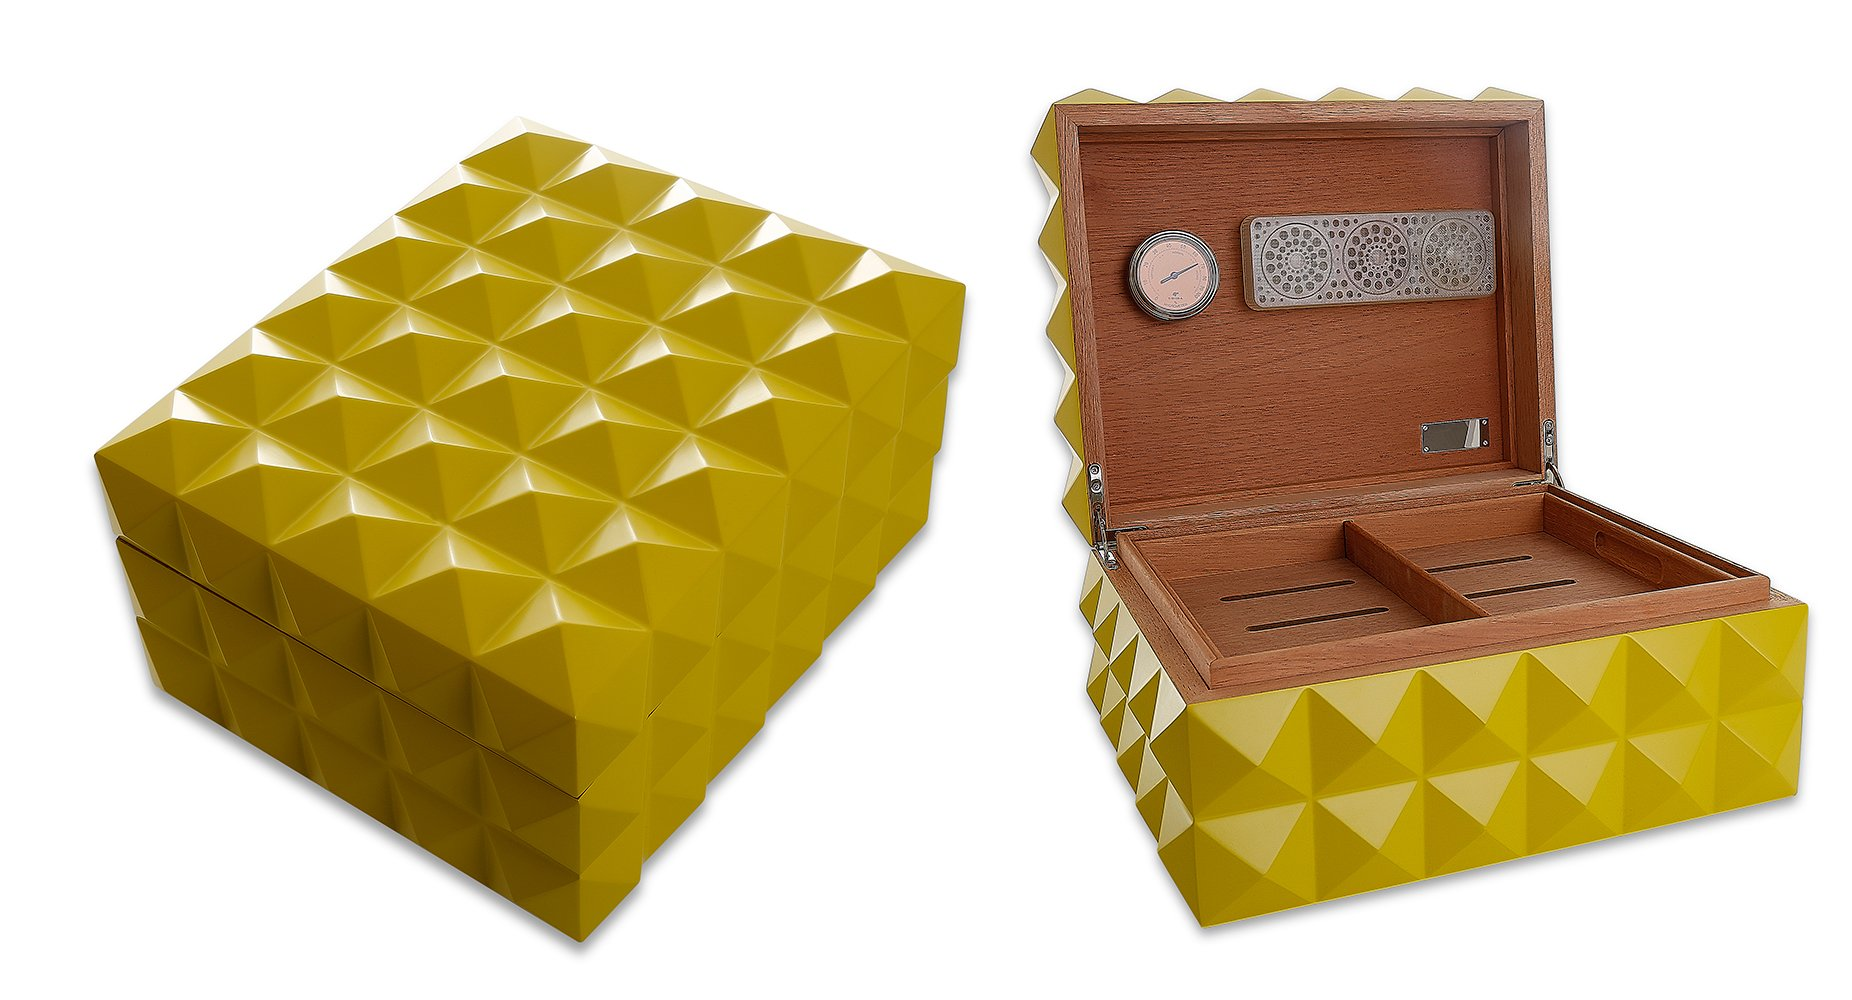 Capo Lily Cigar Humidor Case with Humidifier and Hygrometer, Yellow, Spanish Cedar Wood (Holds Up to 100-125 Cigars)